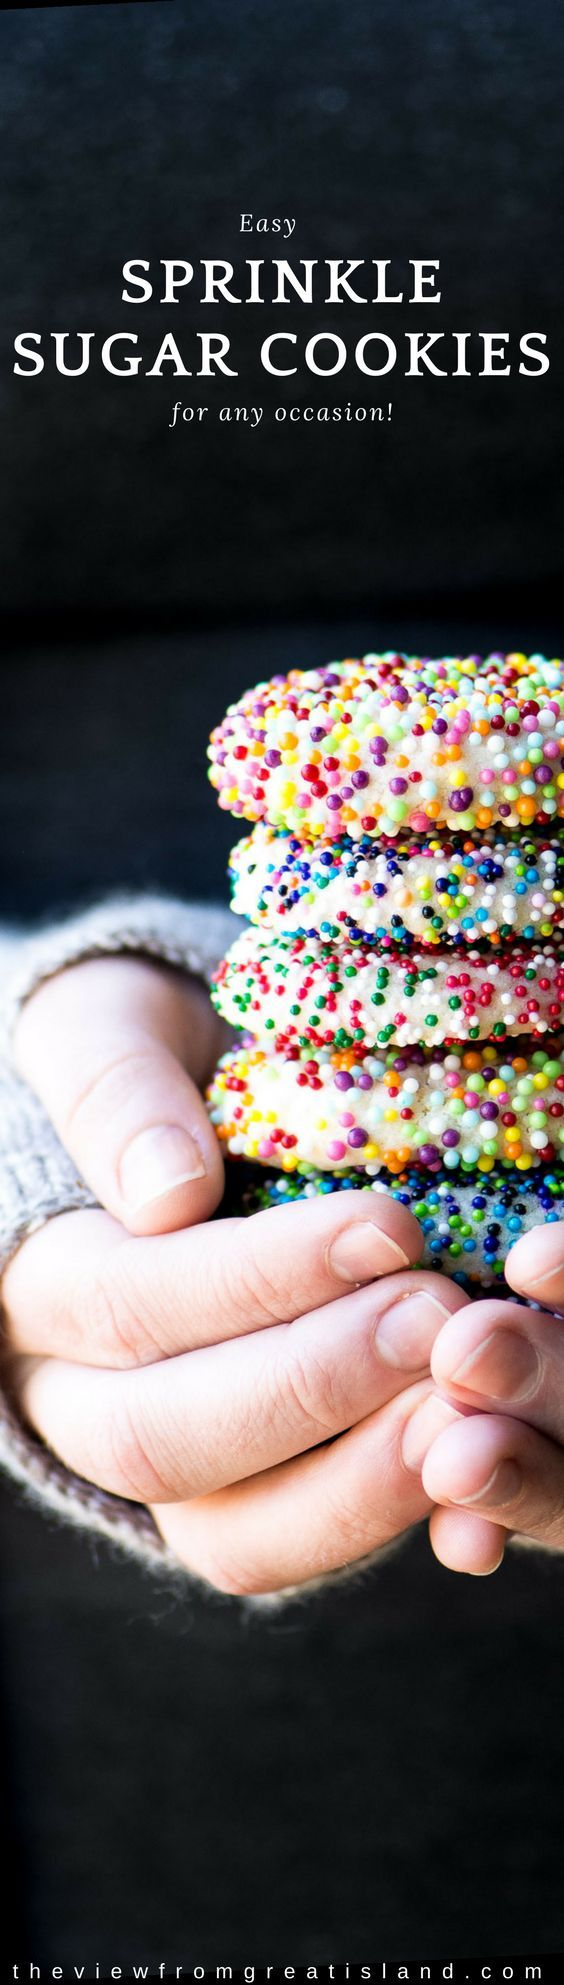 Sprinkle Sugar Cookies ~ customize these easy sugar cookies for any occasion, from Halloween and Christmas to Valentine's Day, Easter, and the 4th of July ~ just change up the colors! #sugarcookies #sprinkles #easycookies #kidsbaking #Christmascookies #eastercookies #valentine'sdaycookies #Stpatricksdaycookies #springcookies #babyshower #halloween #holidaycookies #dessert